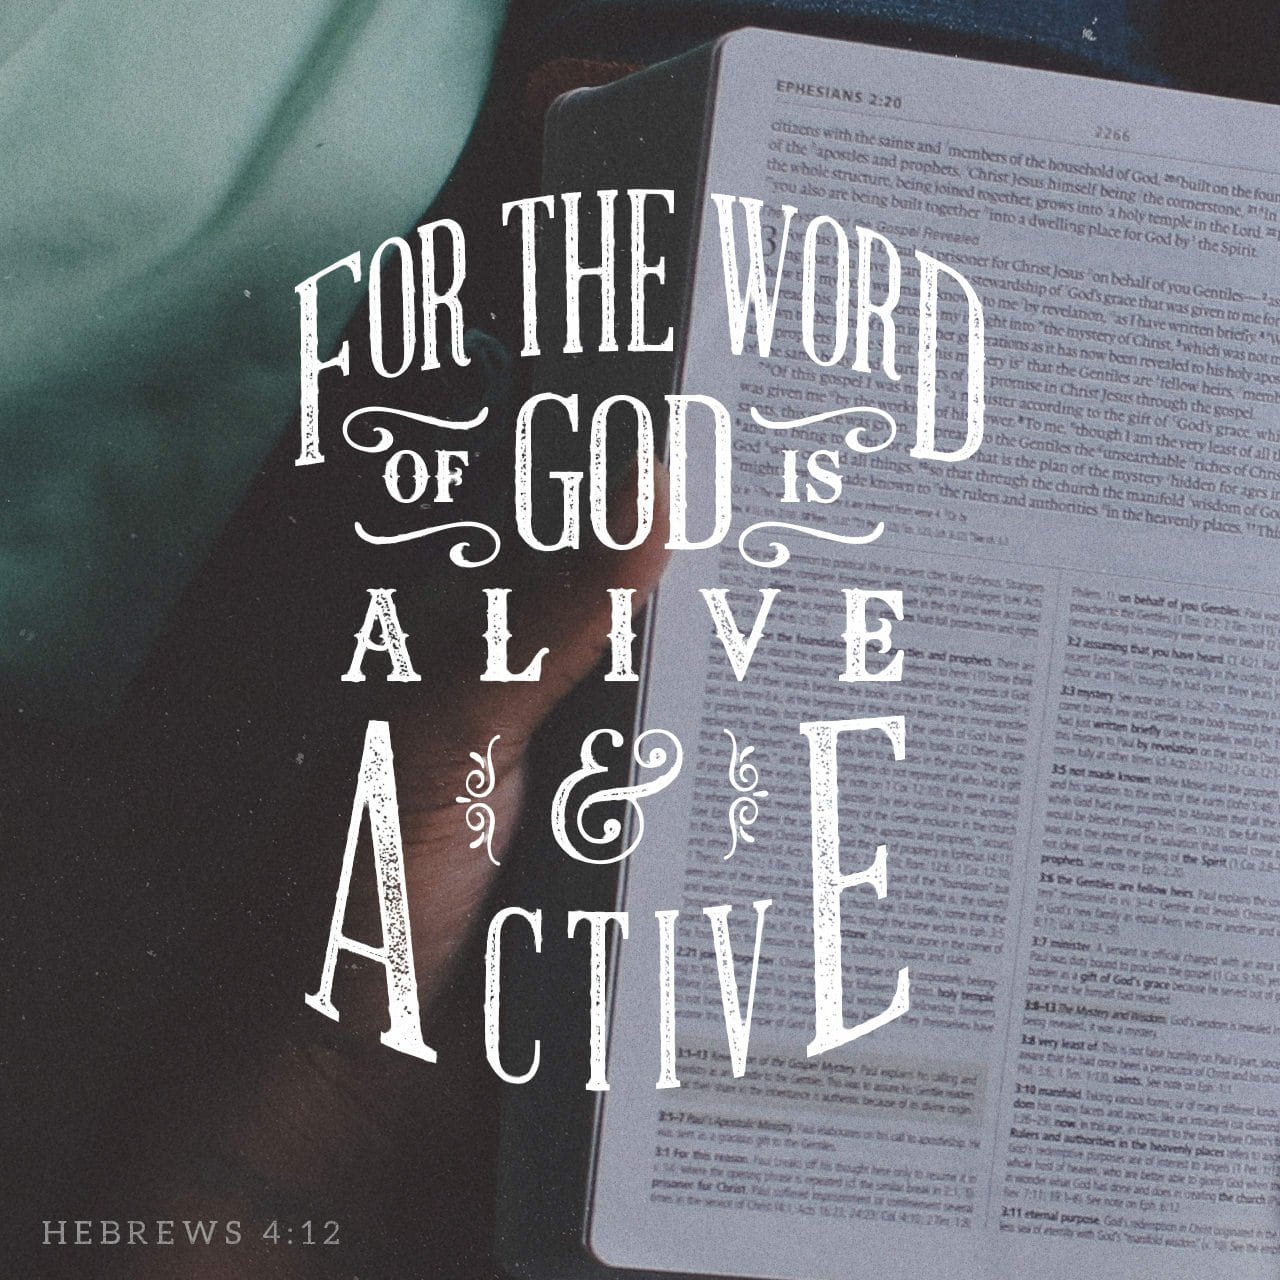 Why is it important to memorize scripture?